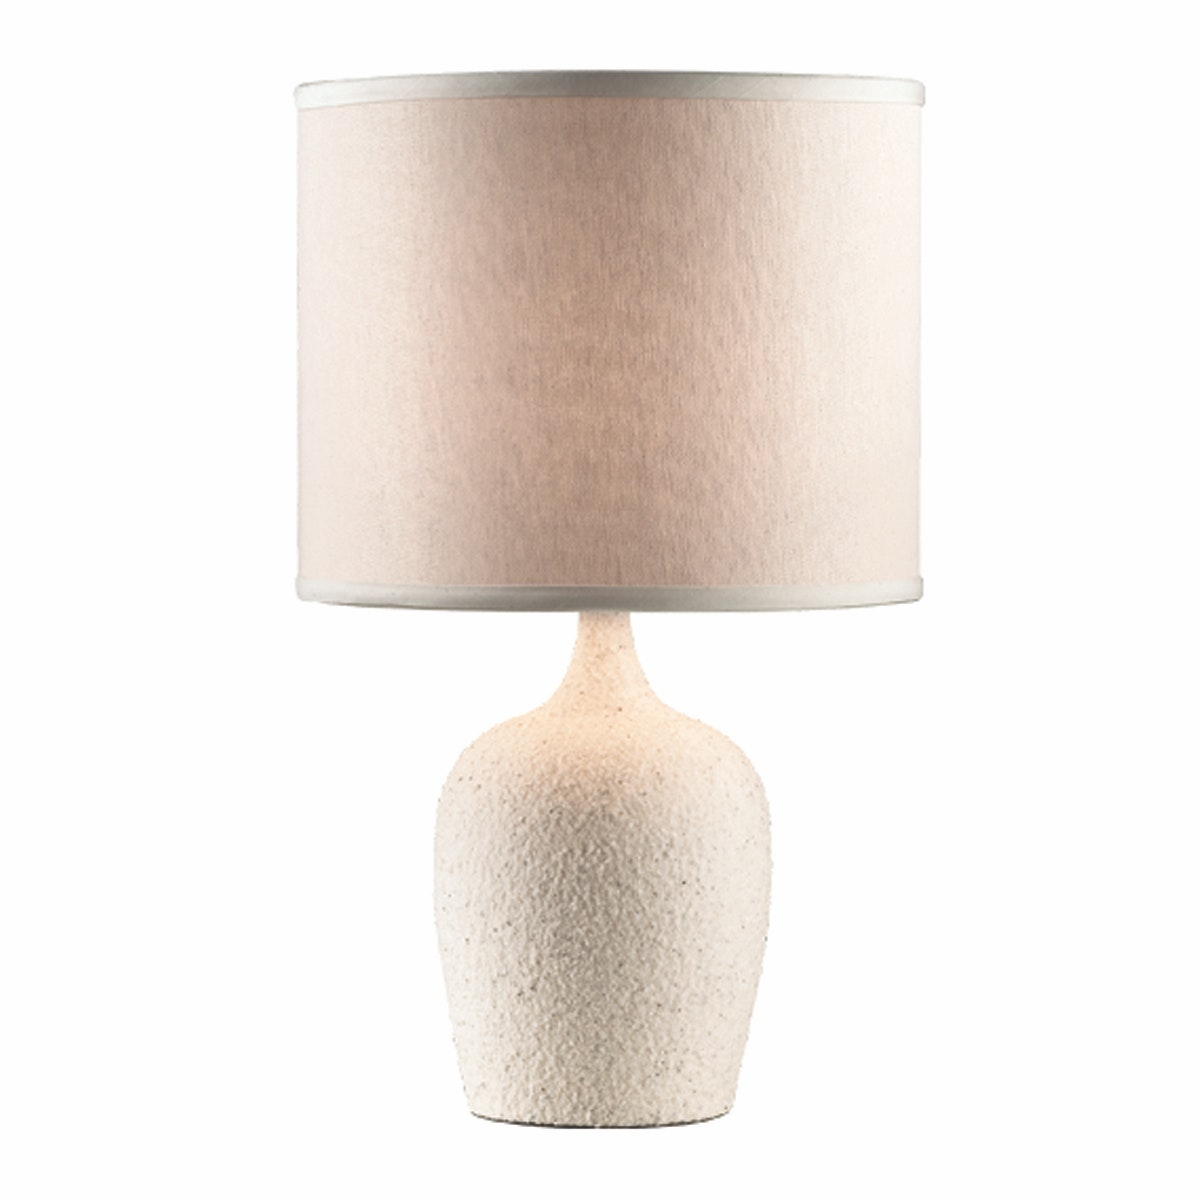 3+PROJECTS Lampu Meja Table Lamp Beige Fabric Shade 3+DL-PD7141-BE-VG